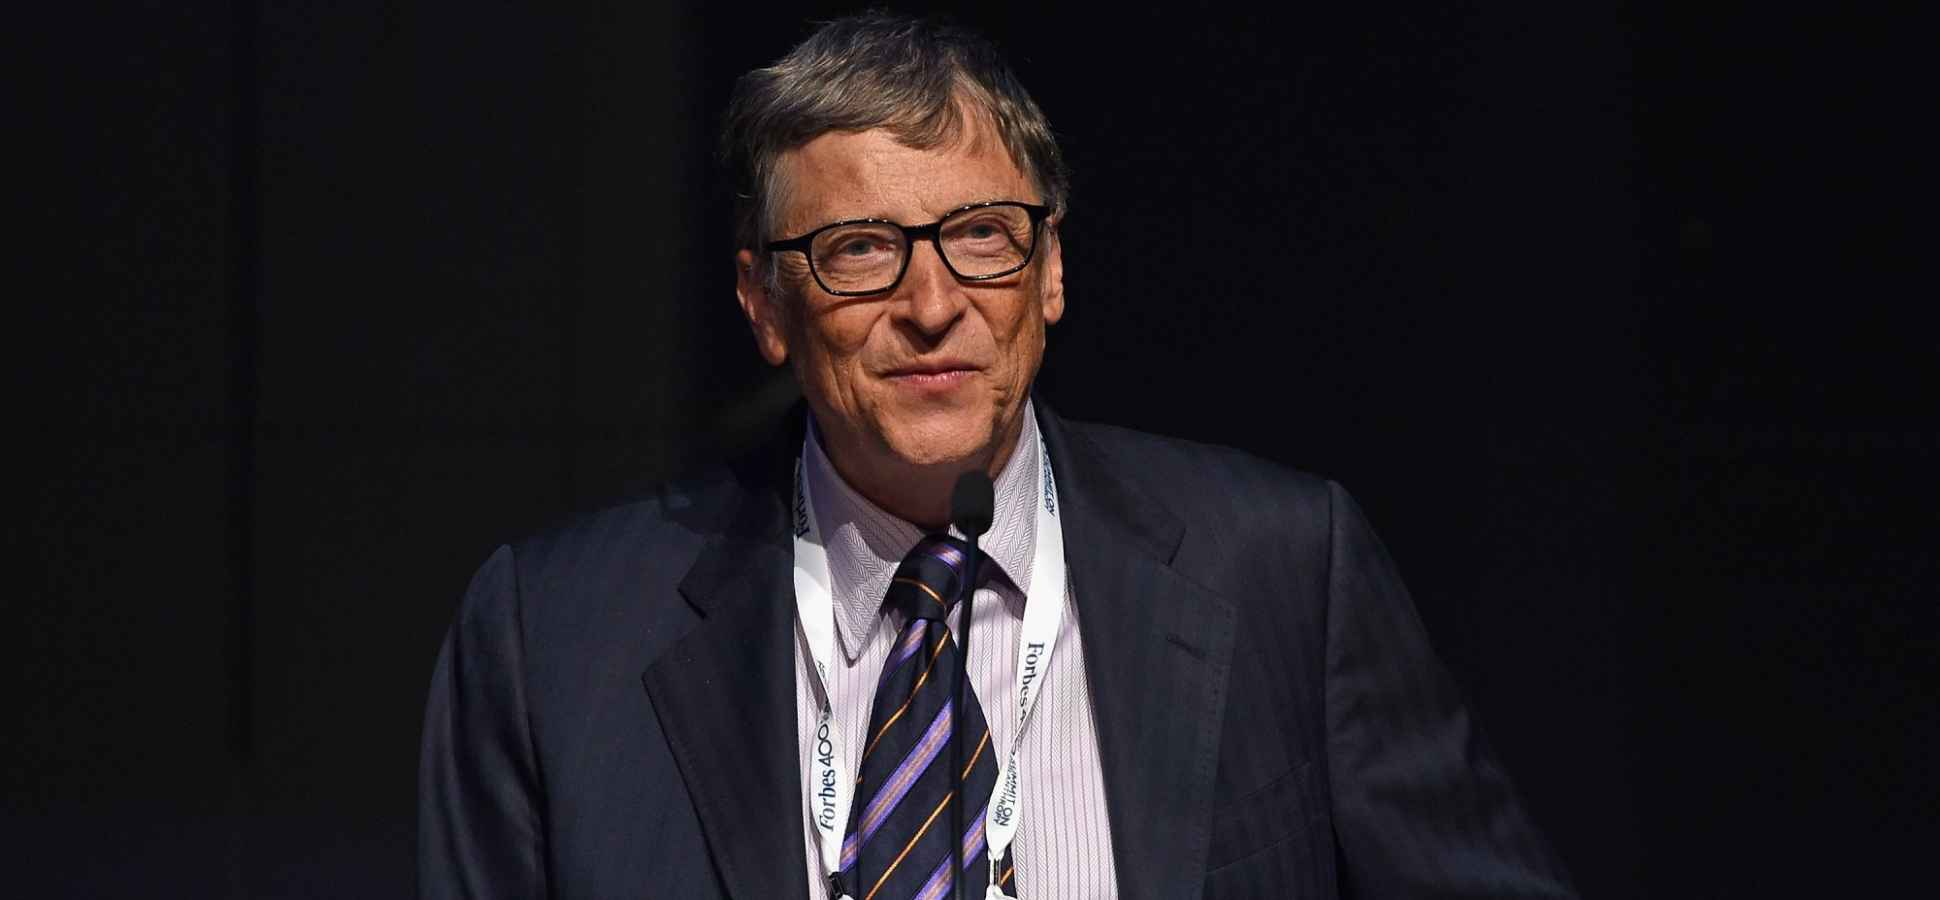 Bill Gates Recommends These 9 Books to Make You a Better Entrepreneur and a Better Person